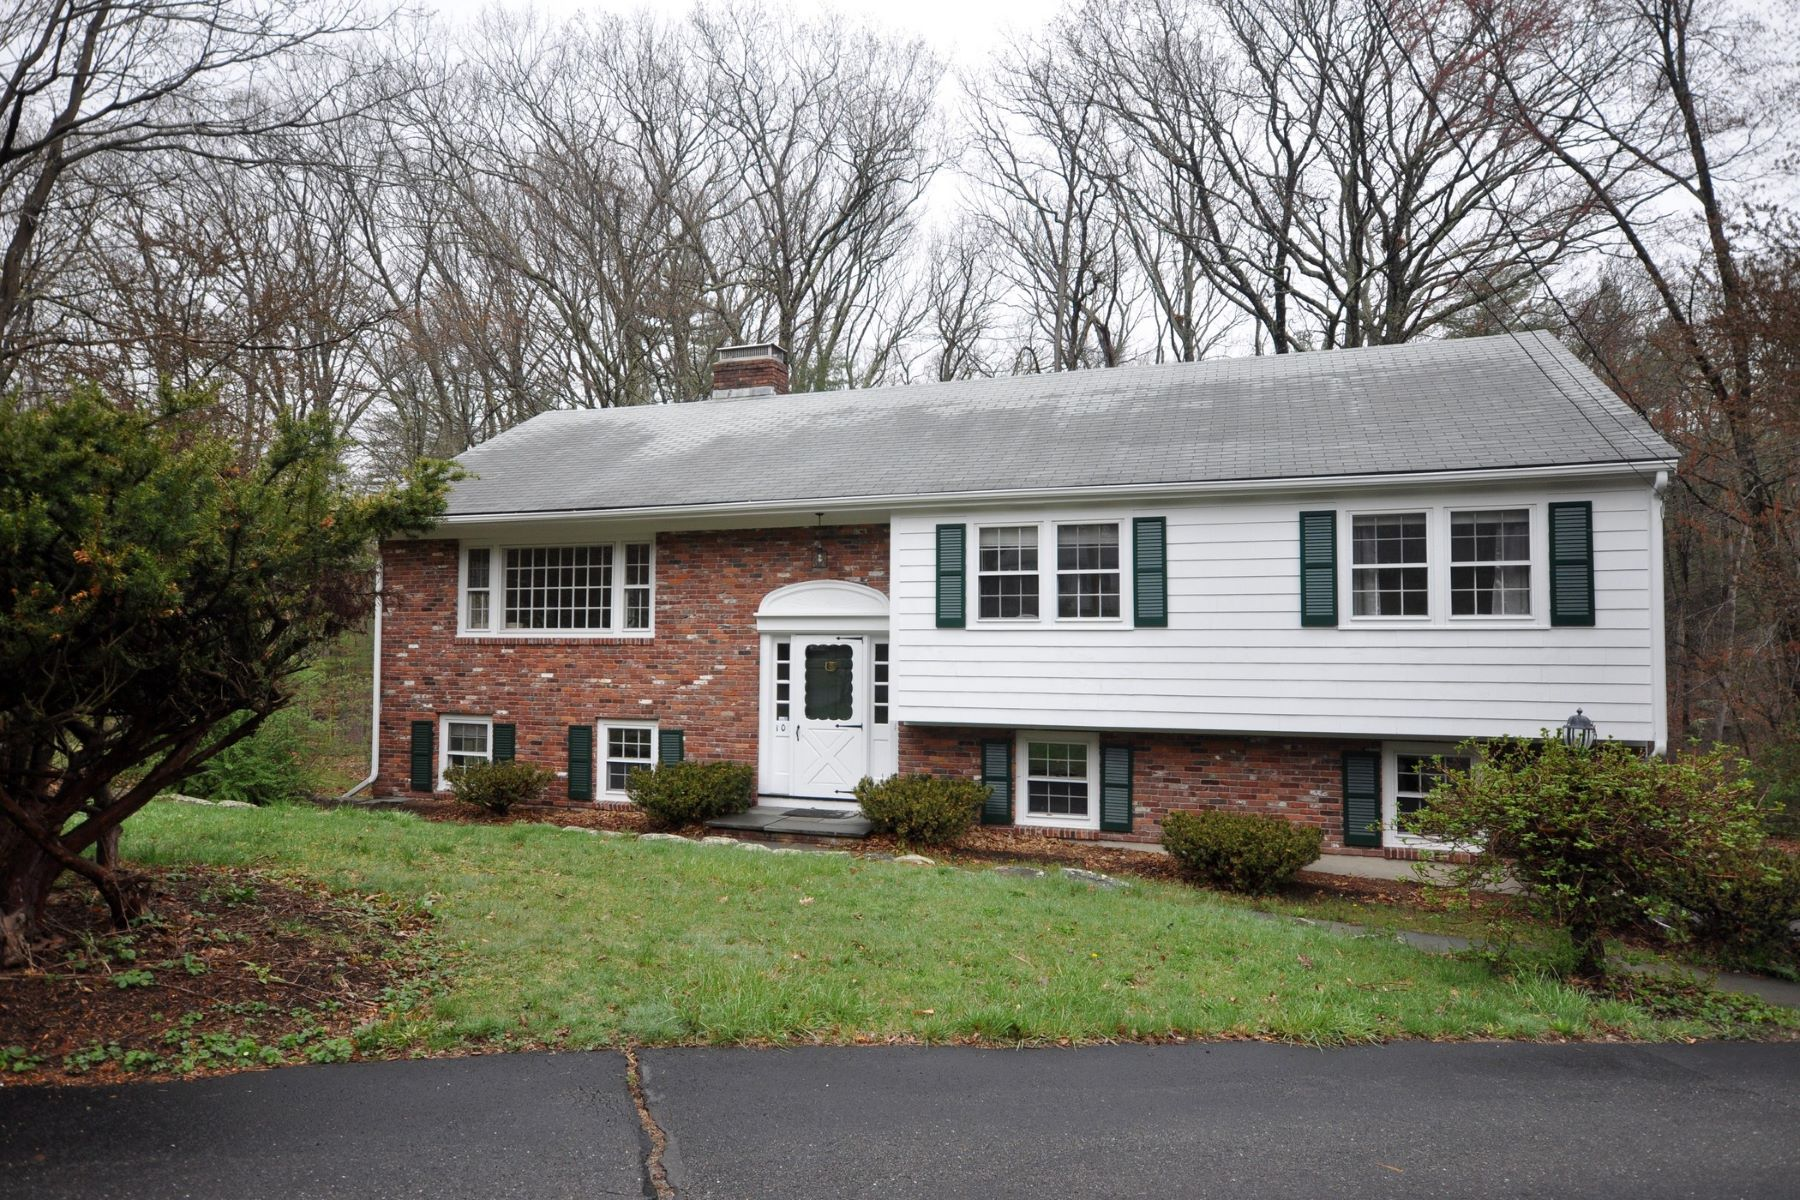 Single Family Home for Rent at Rental Close to Acton Center 10 Greenwood Lane Acton, Massachusetts 01720 United States